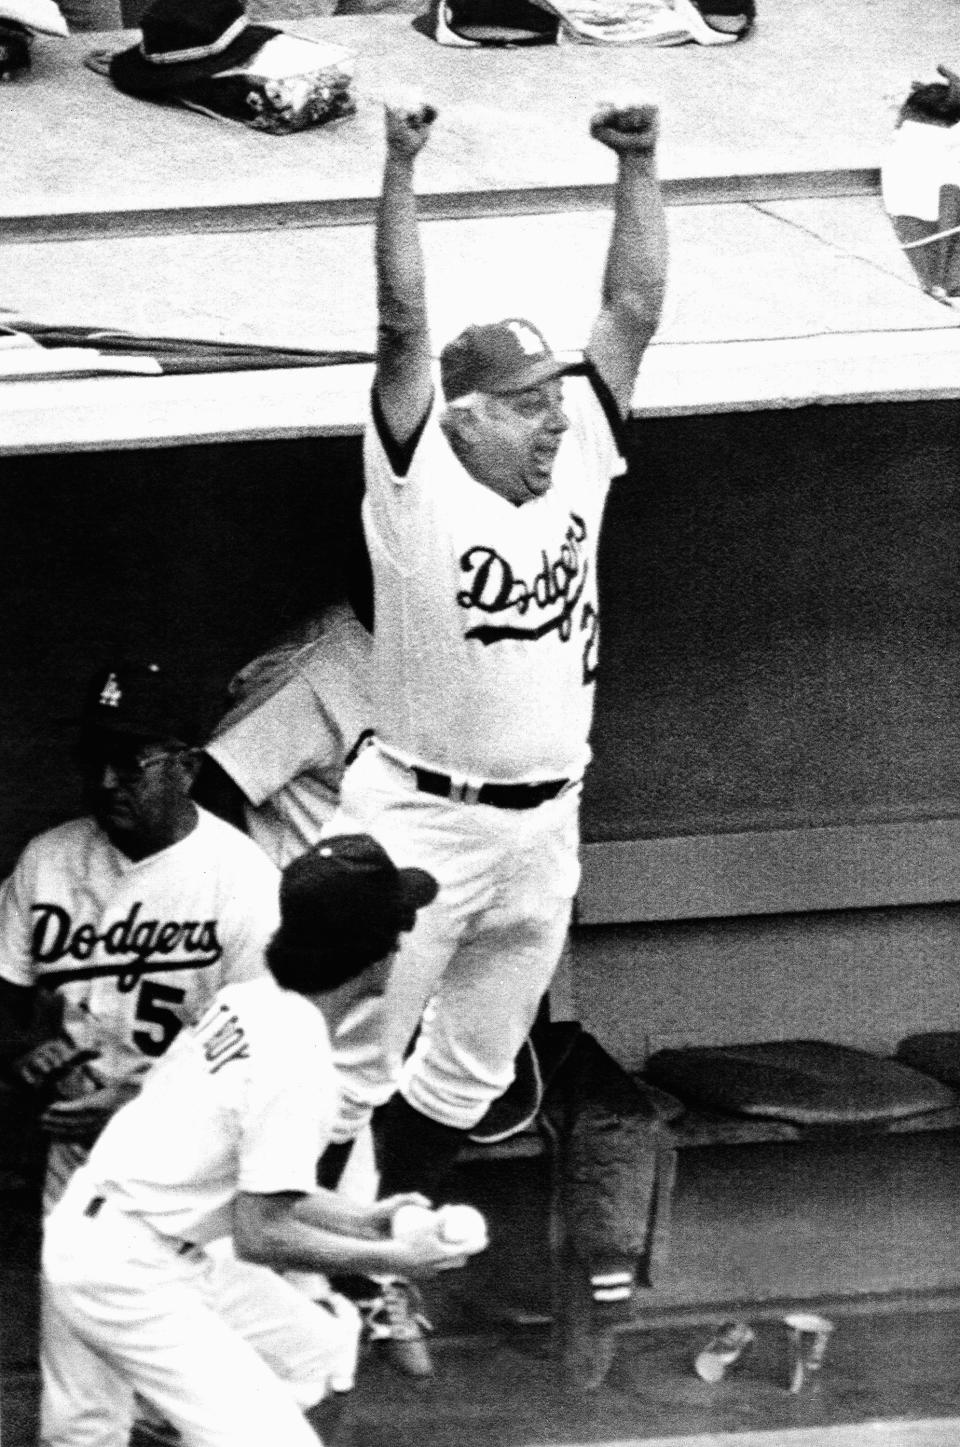 Los Angeles Dodgers manager Tom Lasorda leaps from the dugout as the Dodgers beat the New York Yankees, 8-7, to tie the World Series at two games apiece, Saturday, Oct. 24, 1981 in Los Angeles. (AP Photo)